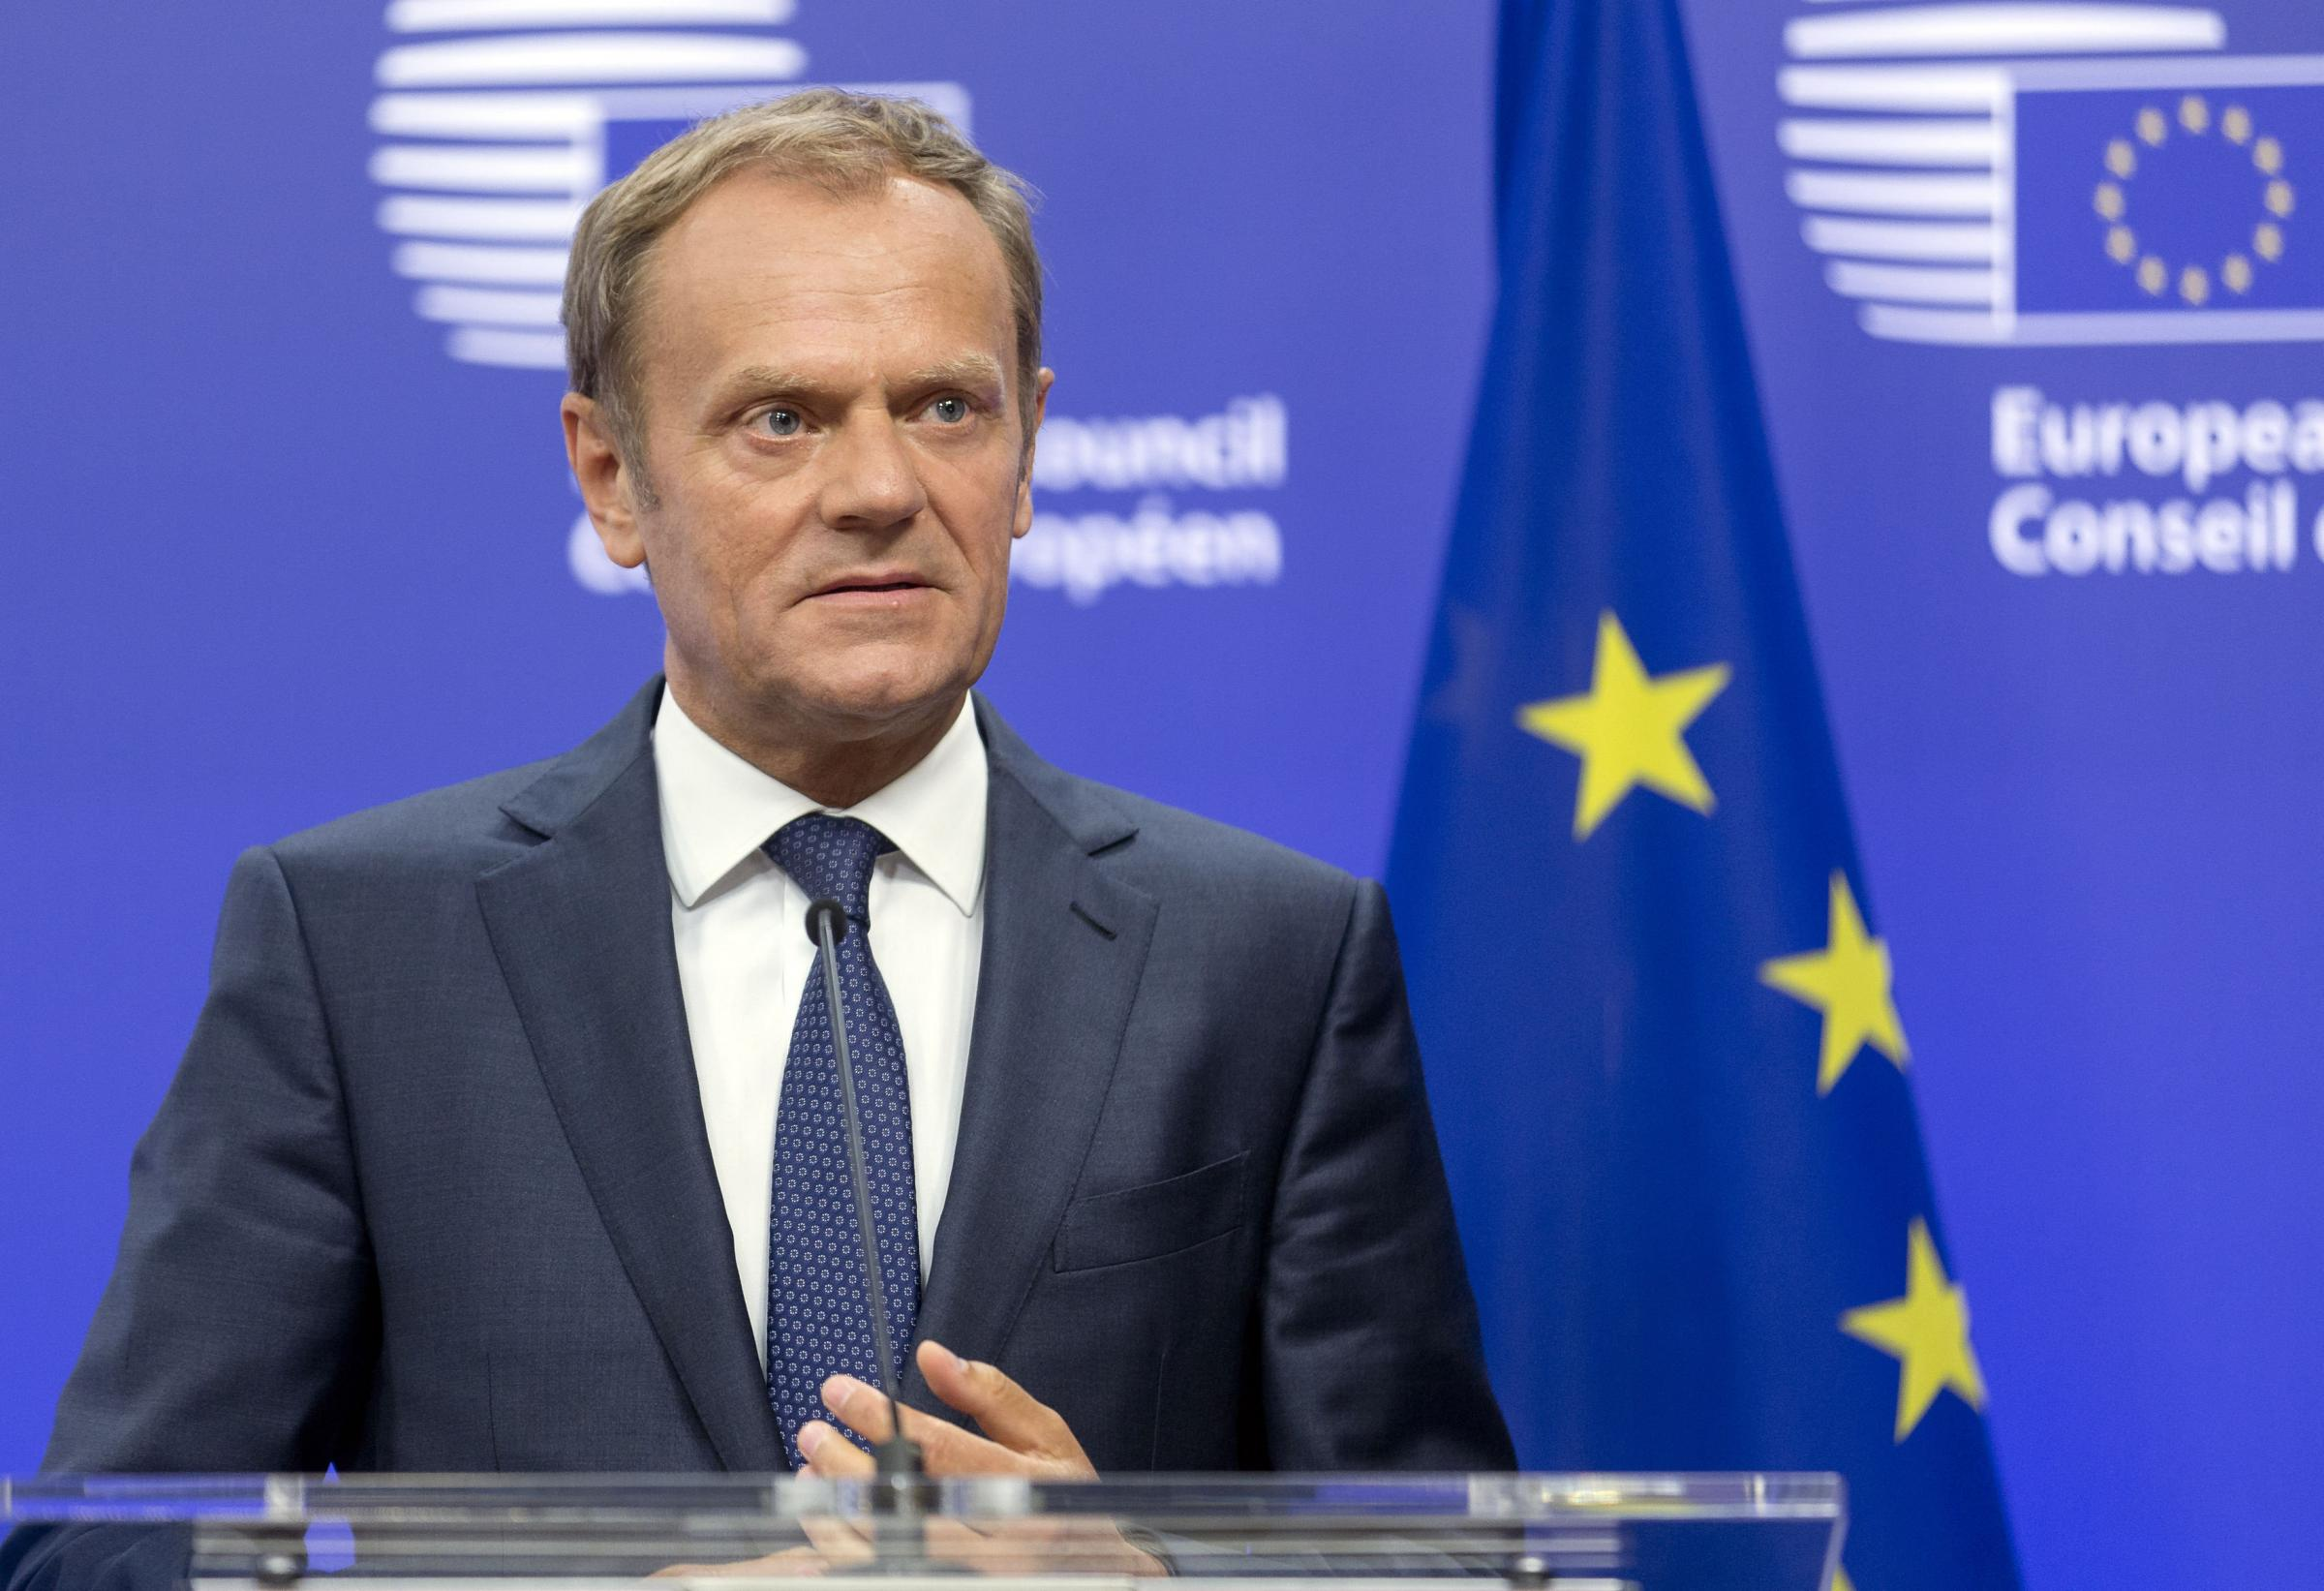 Donald Tusk: I told Mariano Rajoy not to use force in Catalan poll